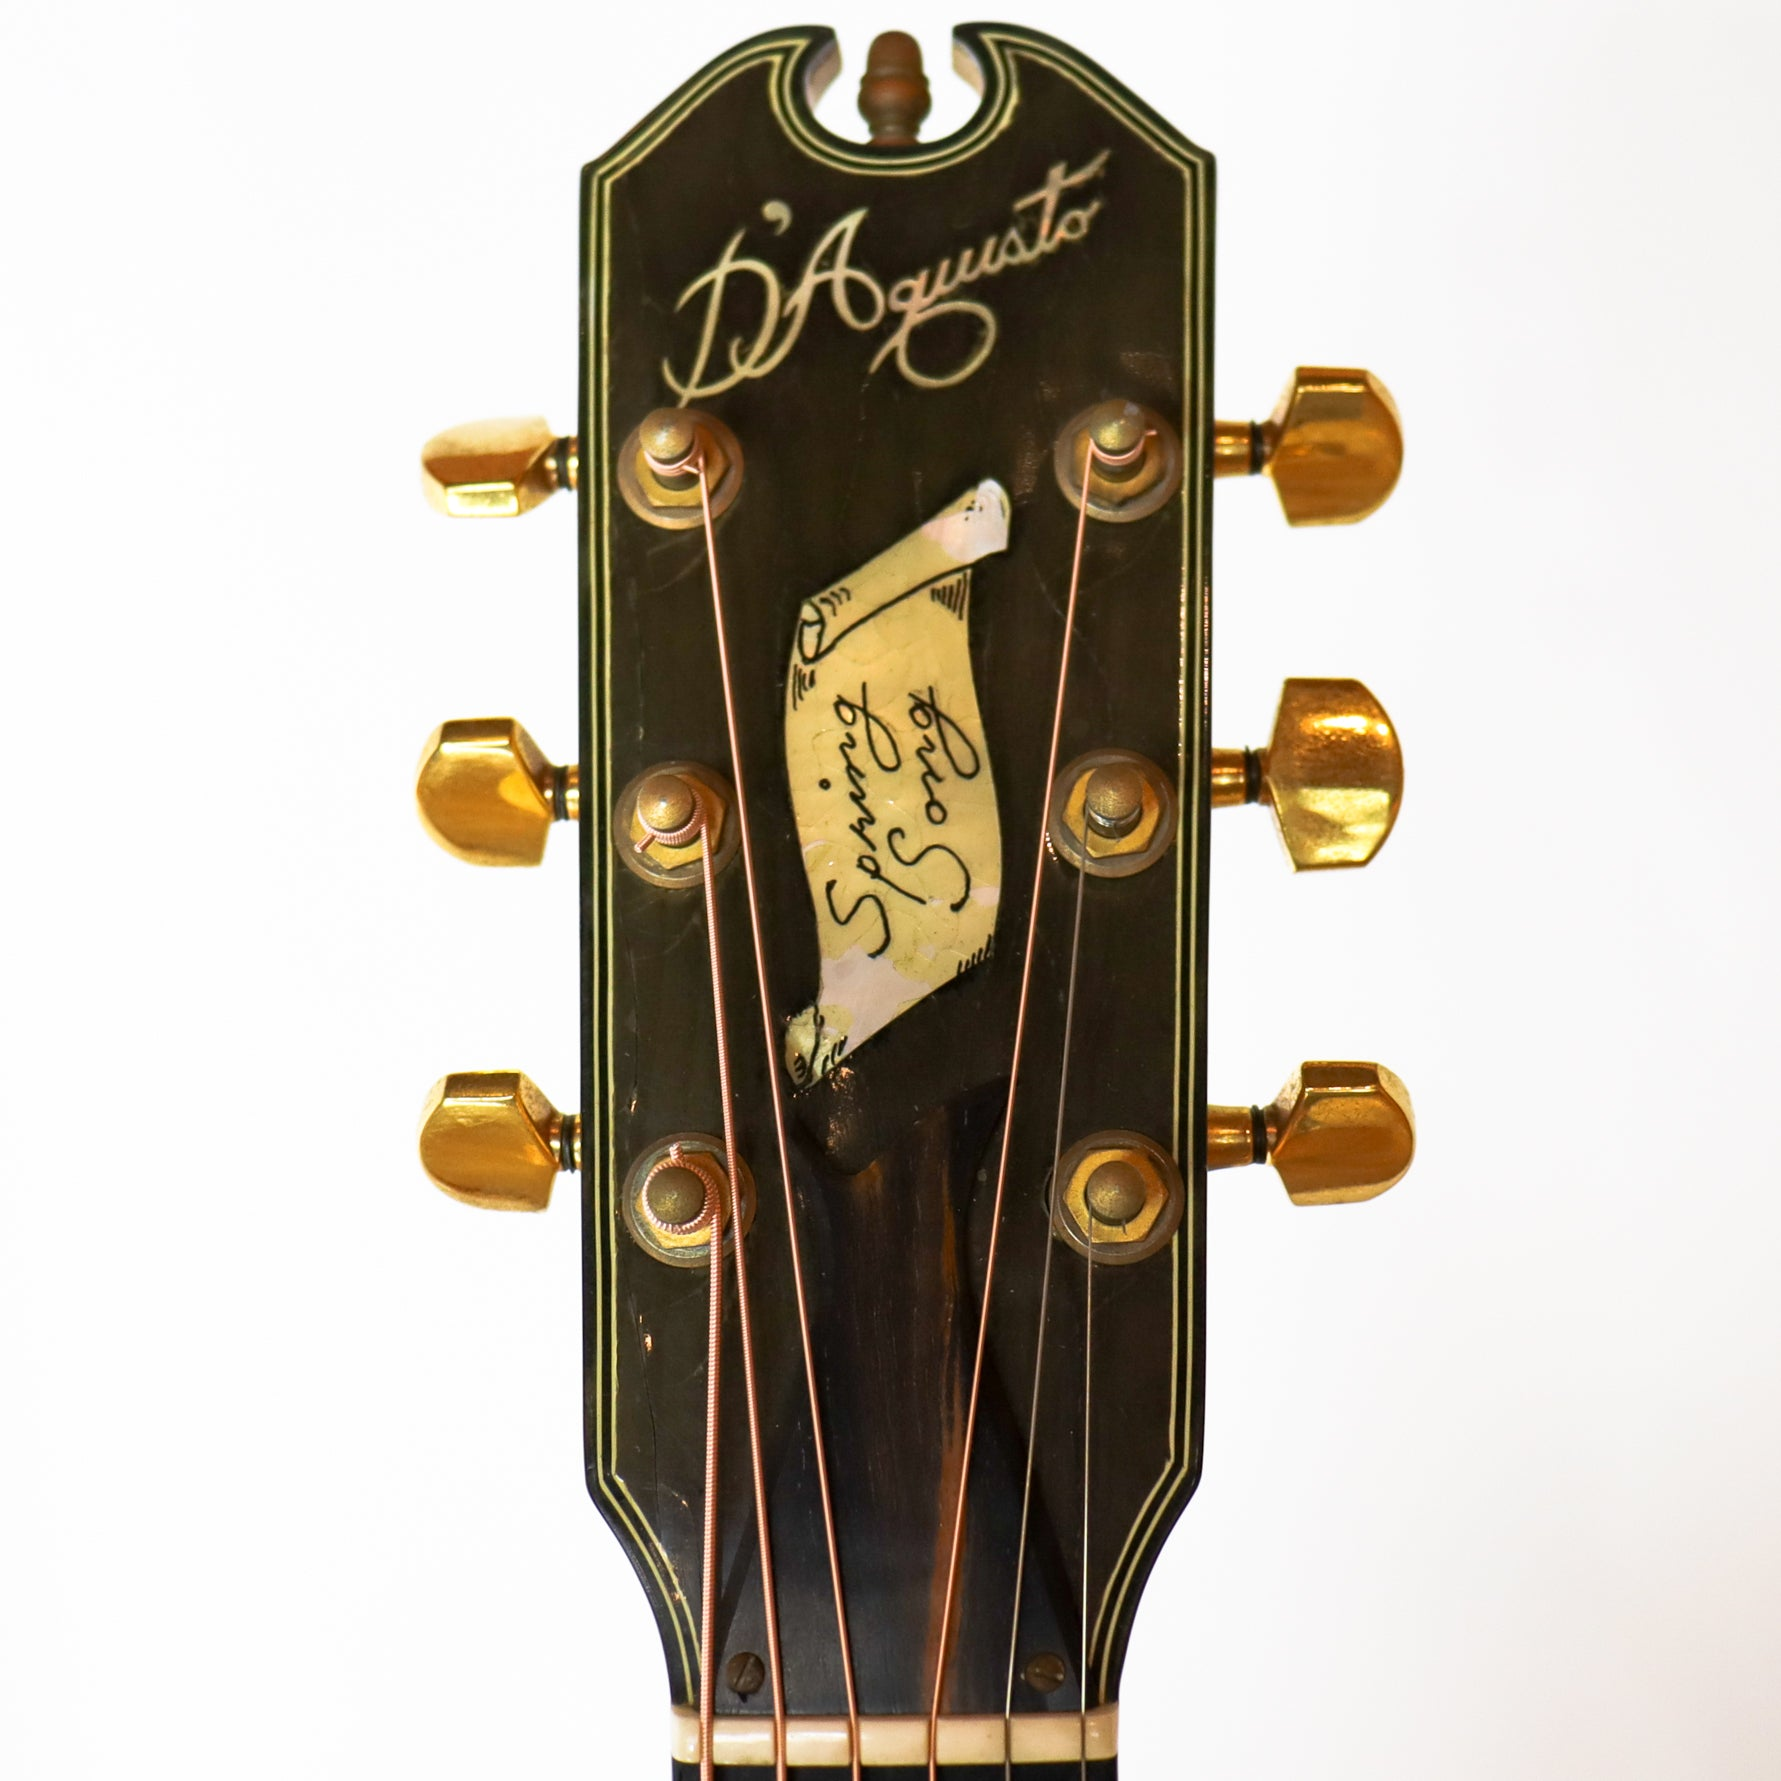 D'Aquisto 1981 Spring Song Flat Top SN# 112, made for Janis Ian